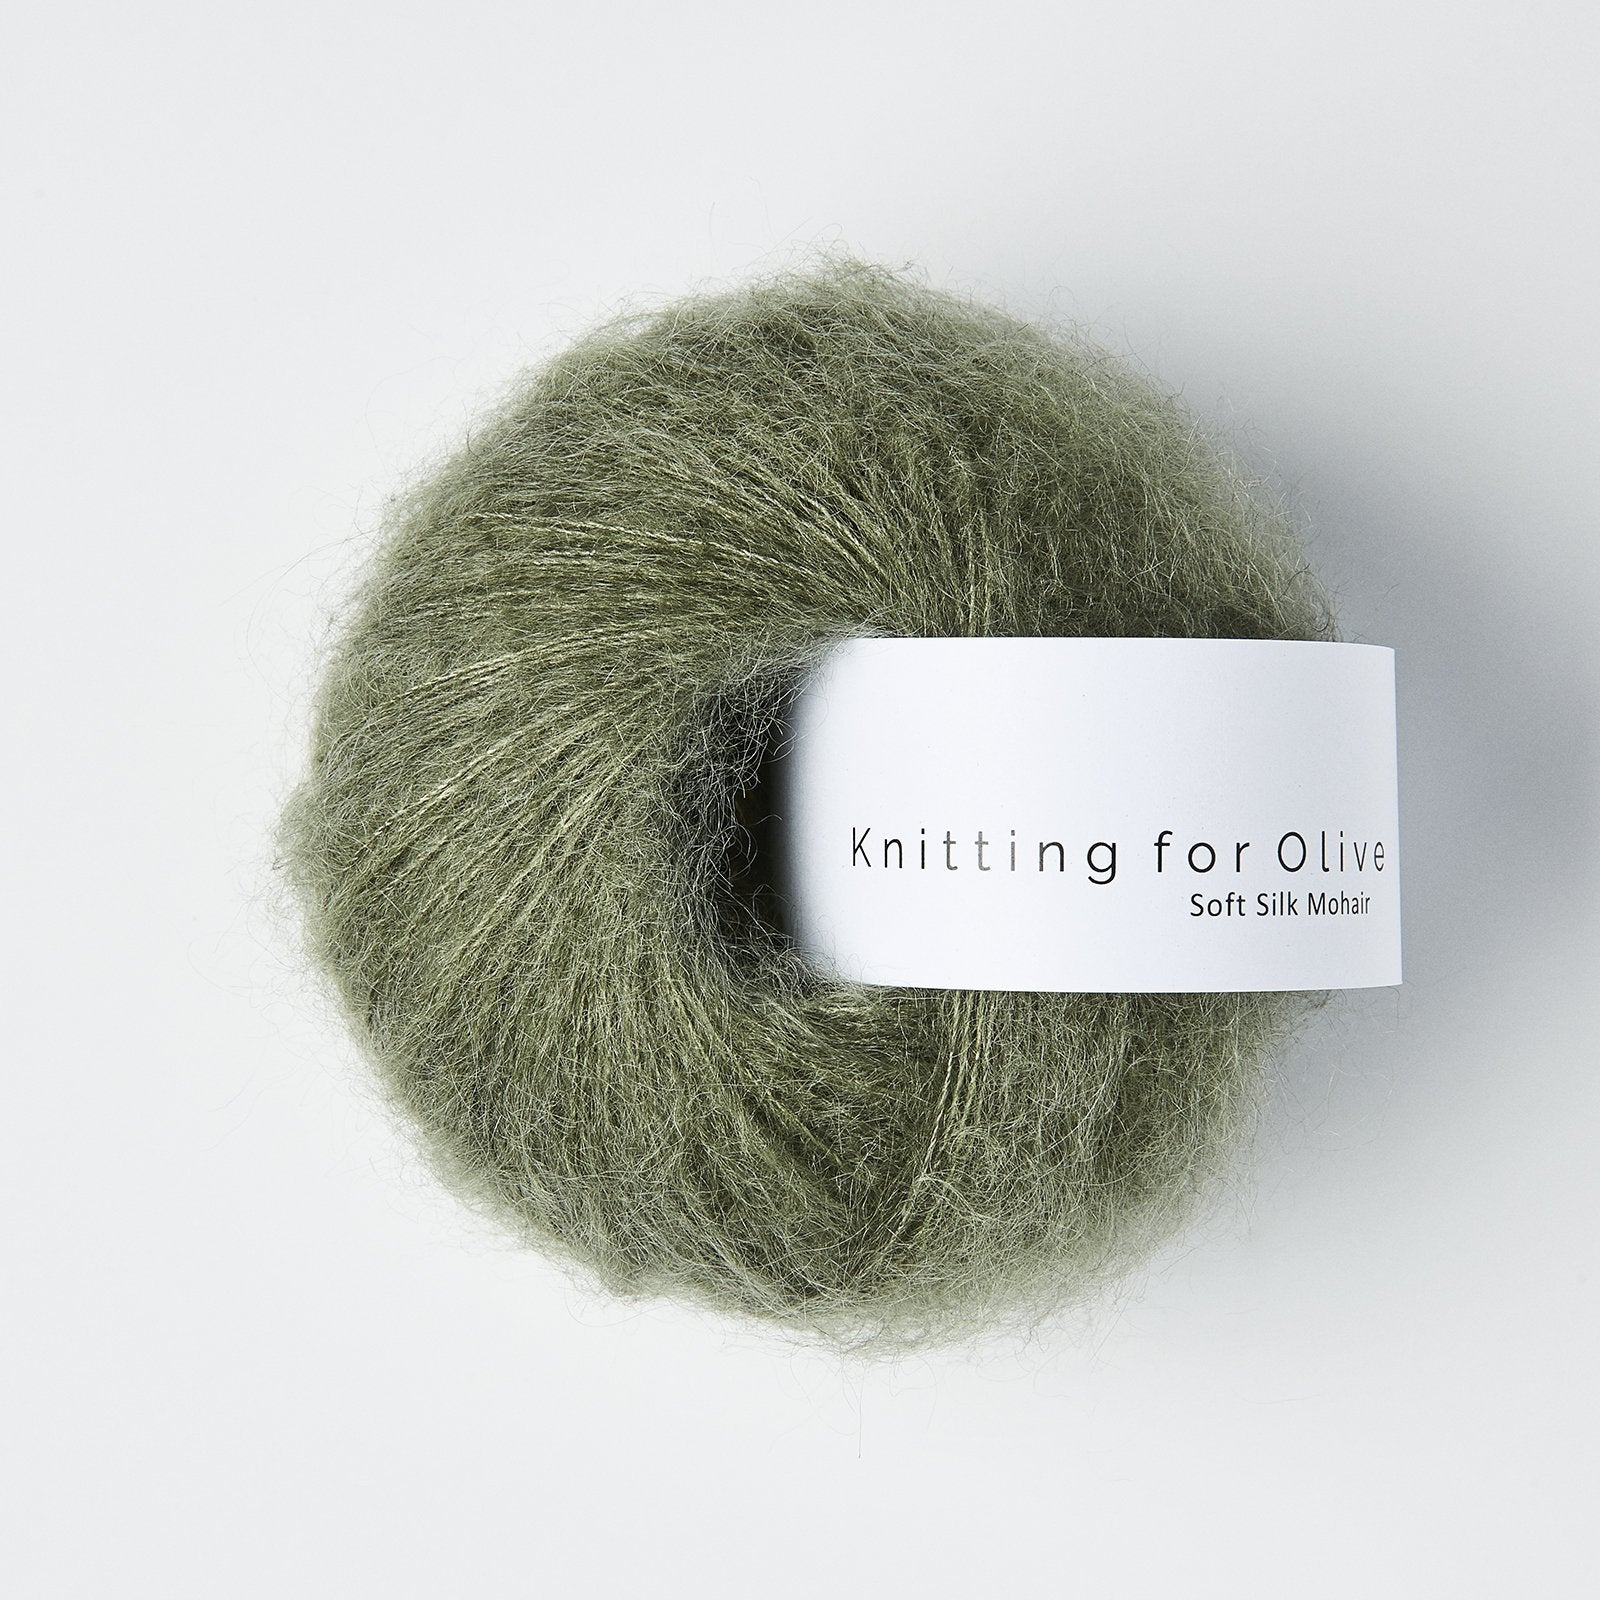 Knitting For Olive Soft Silk Mohair Støvet Søgrøn